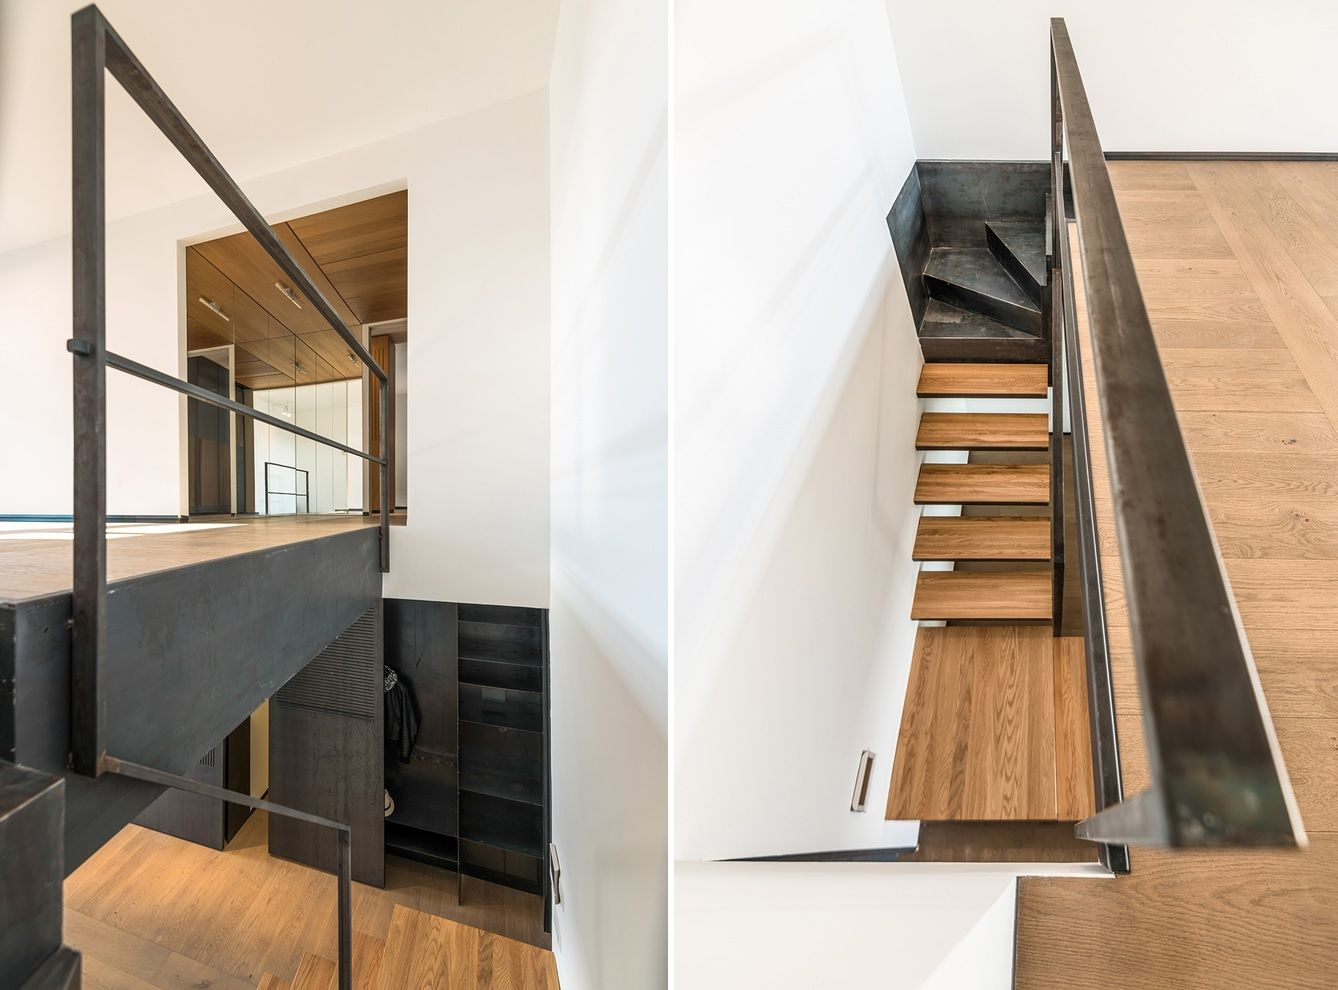 How To Choose The Stair Railing Height So Your Design Is Up To Code | Industrial Stair Railing Design | Industrial Style | All Metal Interior | Contemporary Metal | Small Stair | Detail Industrial